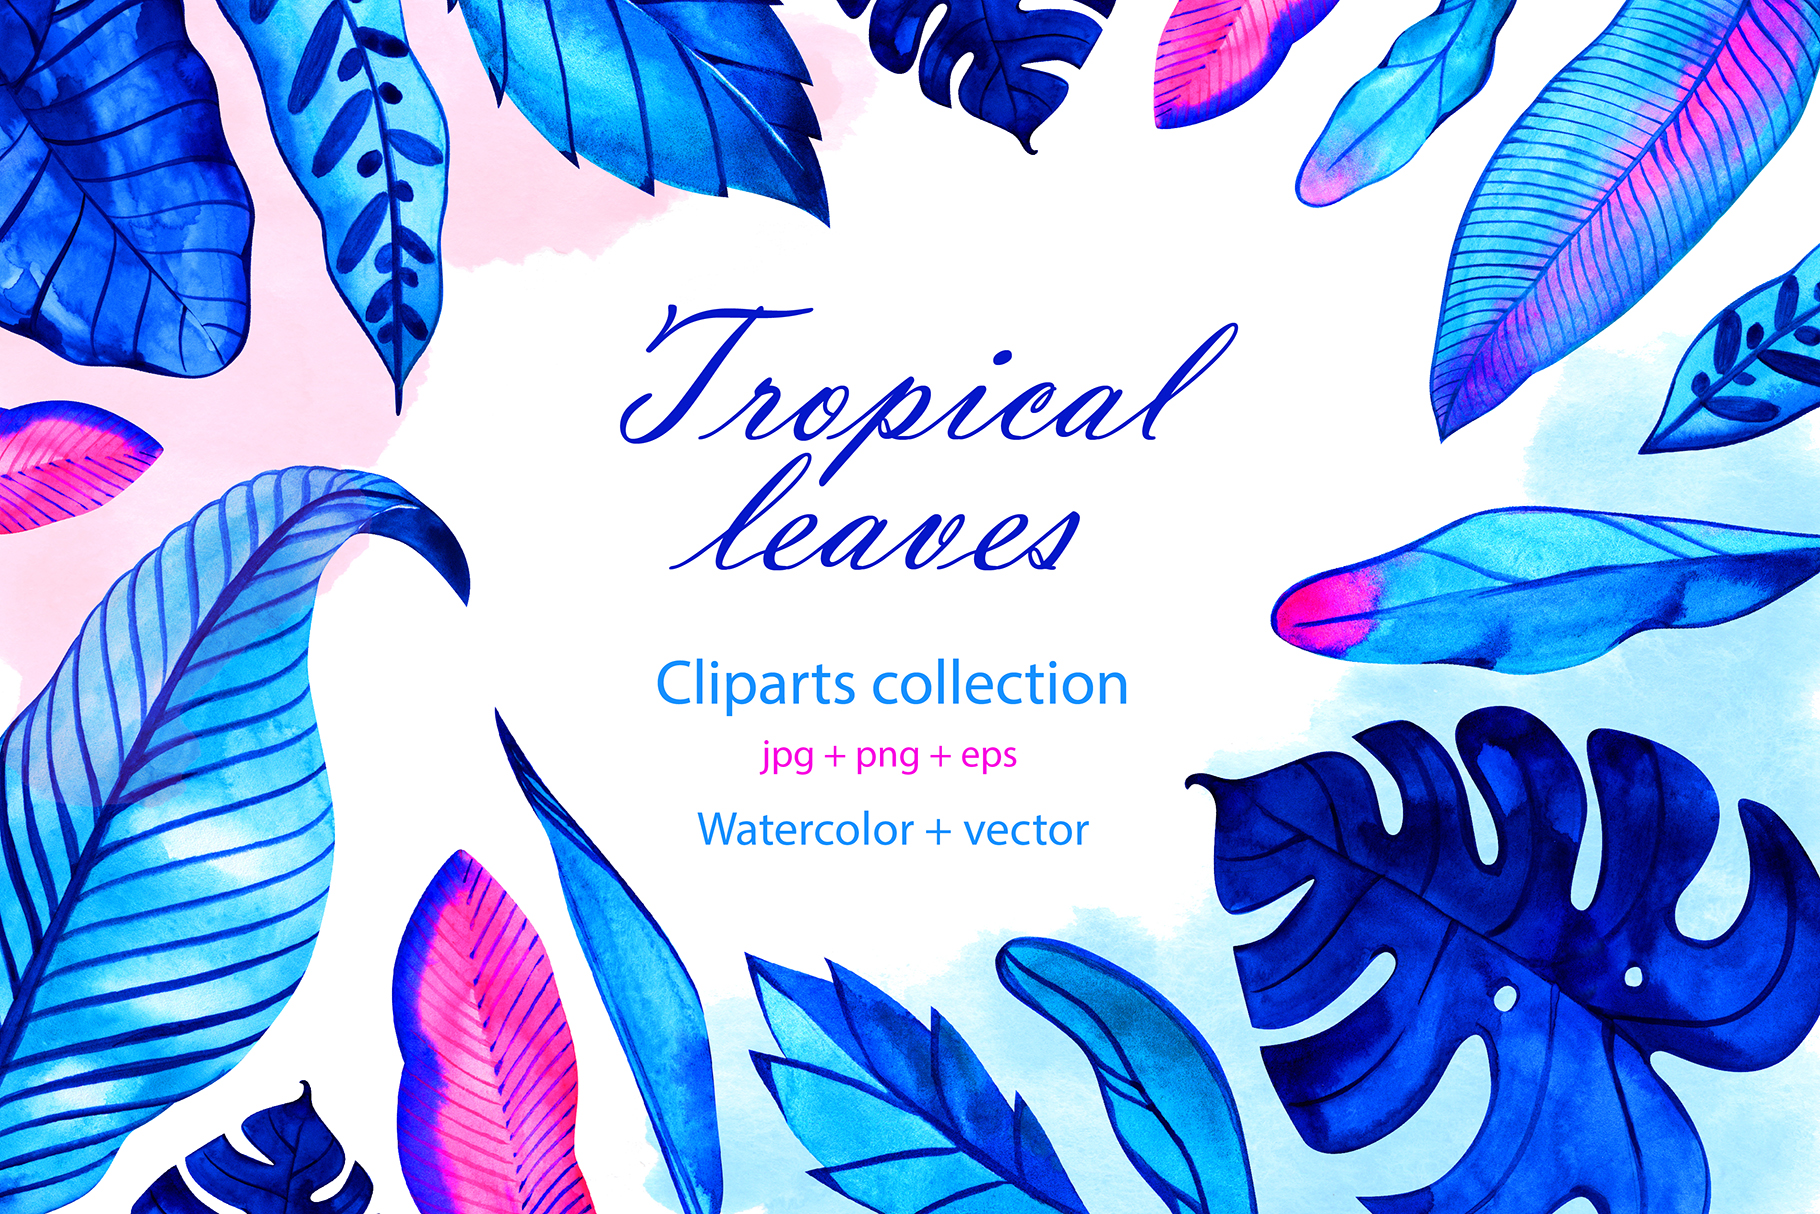 Download Free Watercolor Digital Neon Tropical Leaves Graphic By for Cricut Explore, Silhouette and other cutting machines.